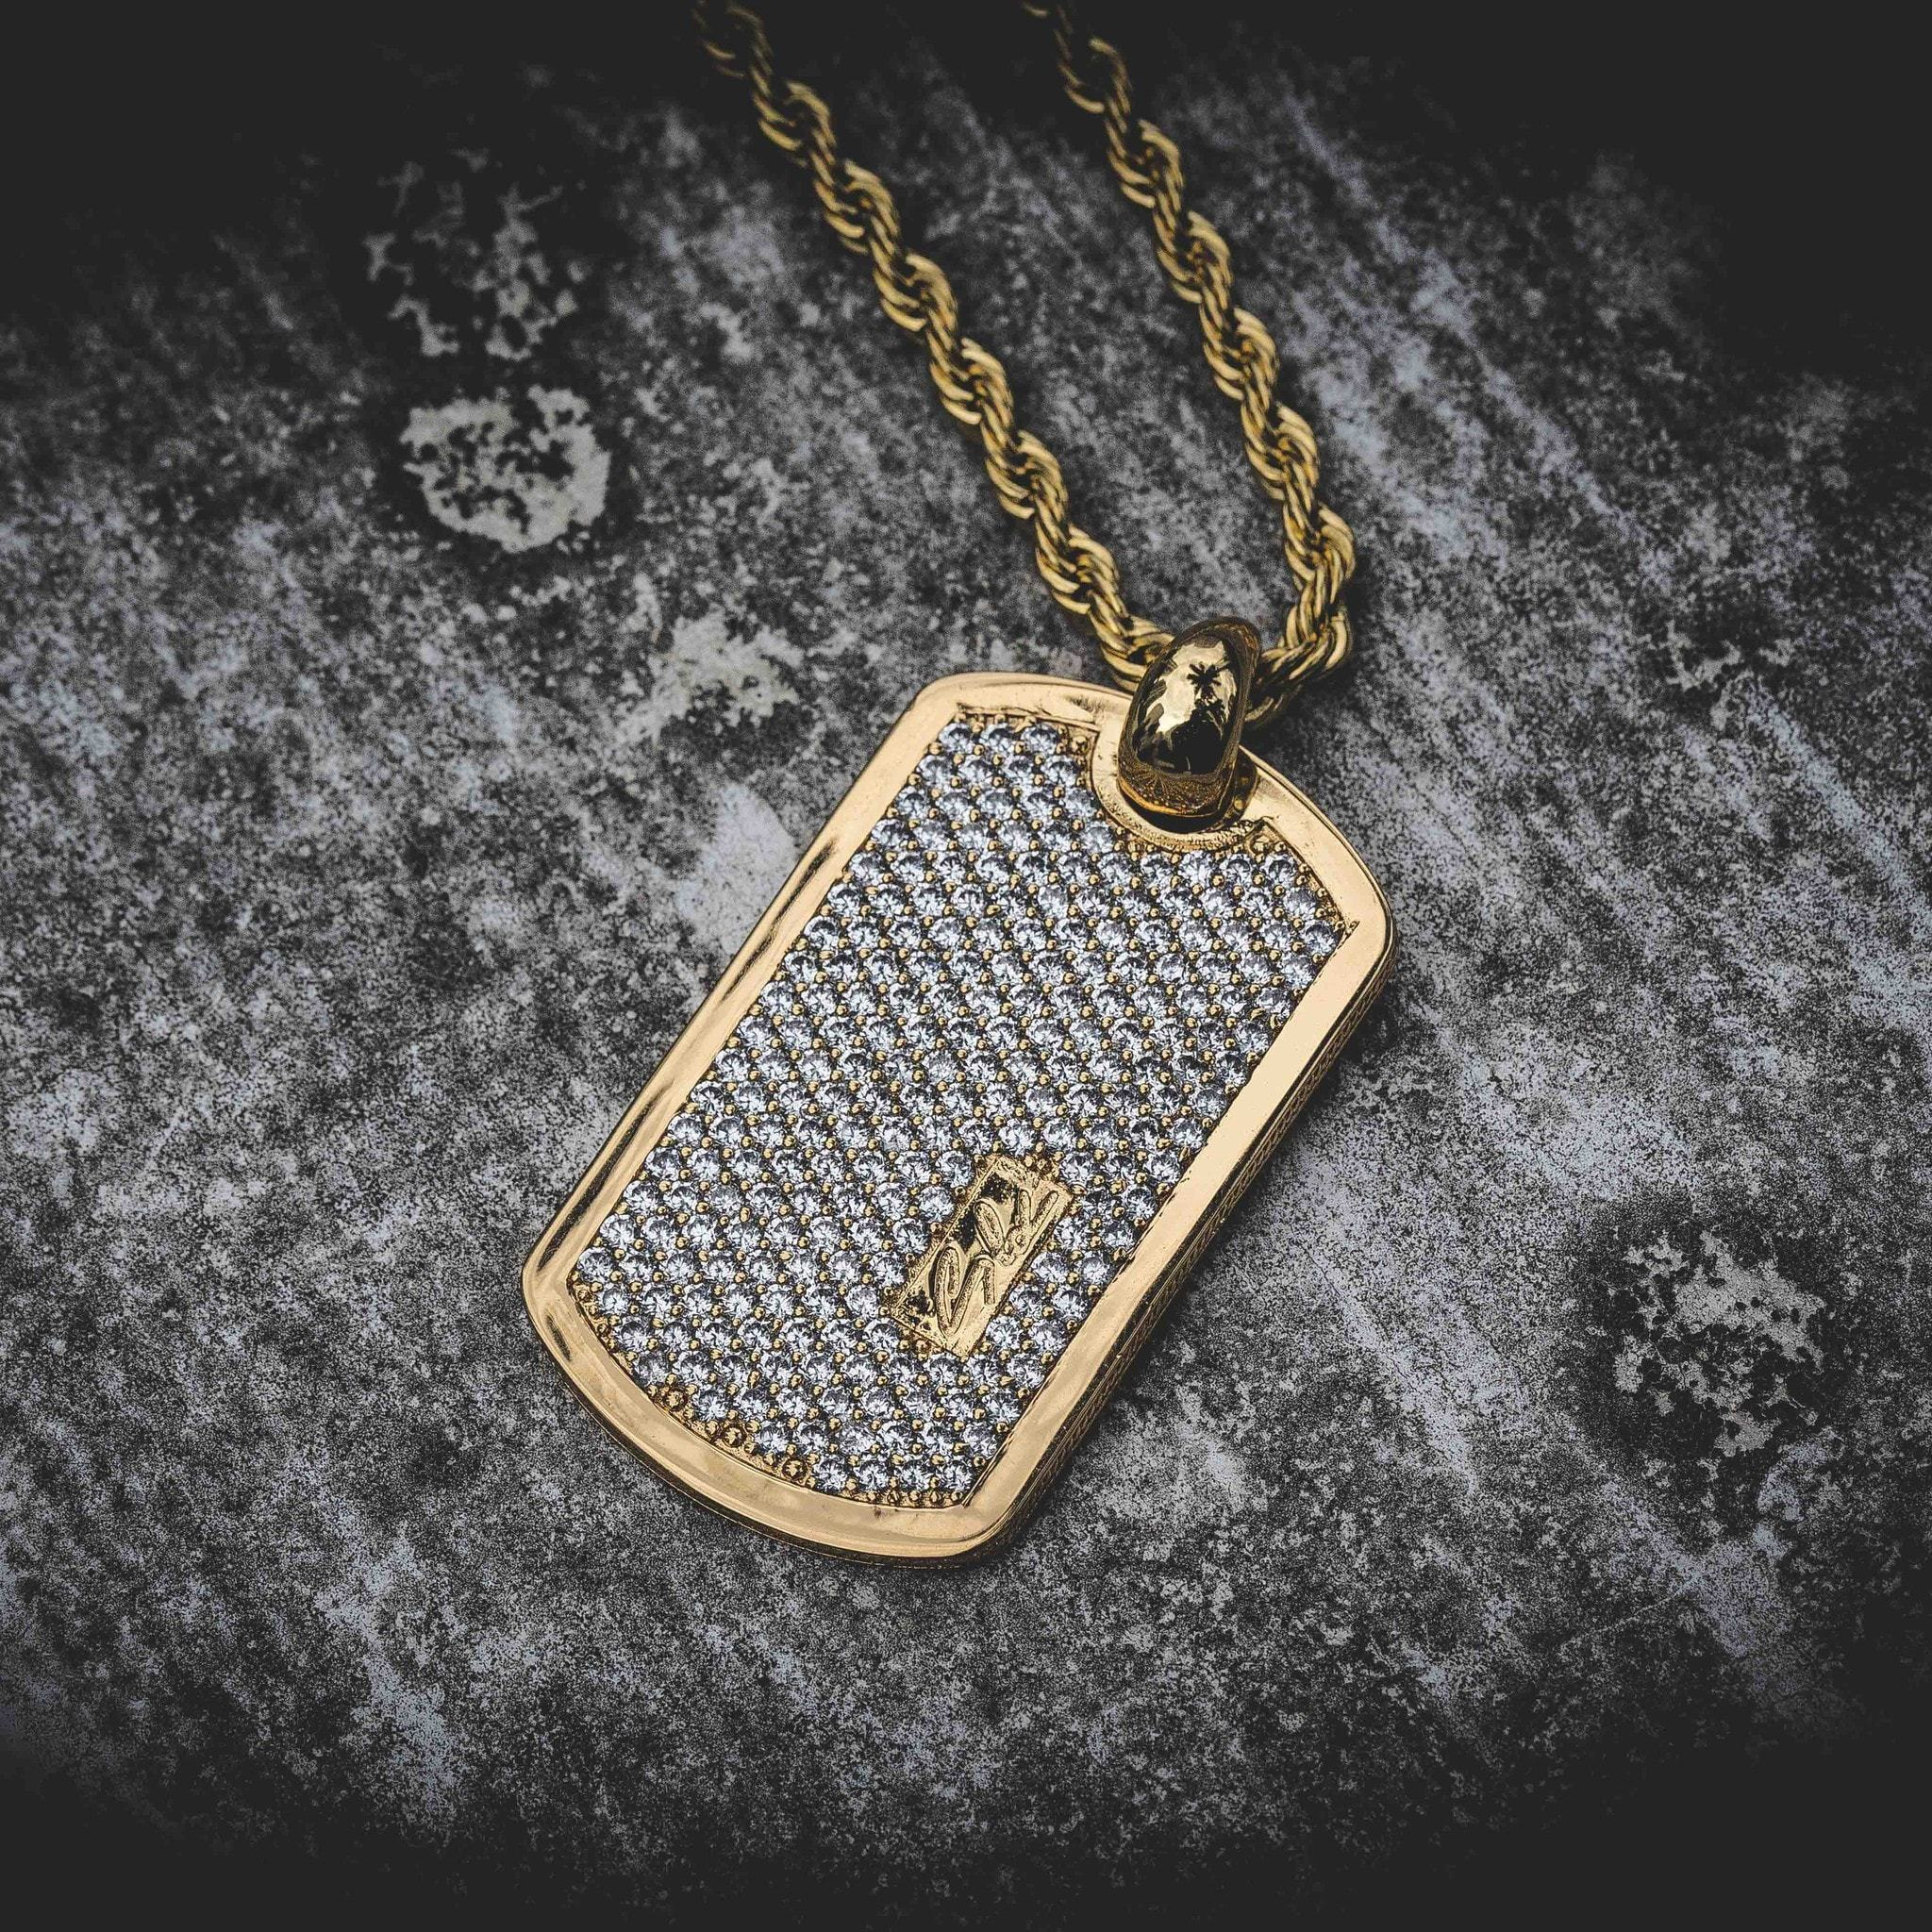 Gld dog tag pendant the gld shop gld iced dog tag pendant the gld shop aloadofball Gallery